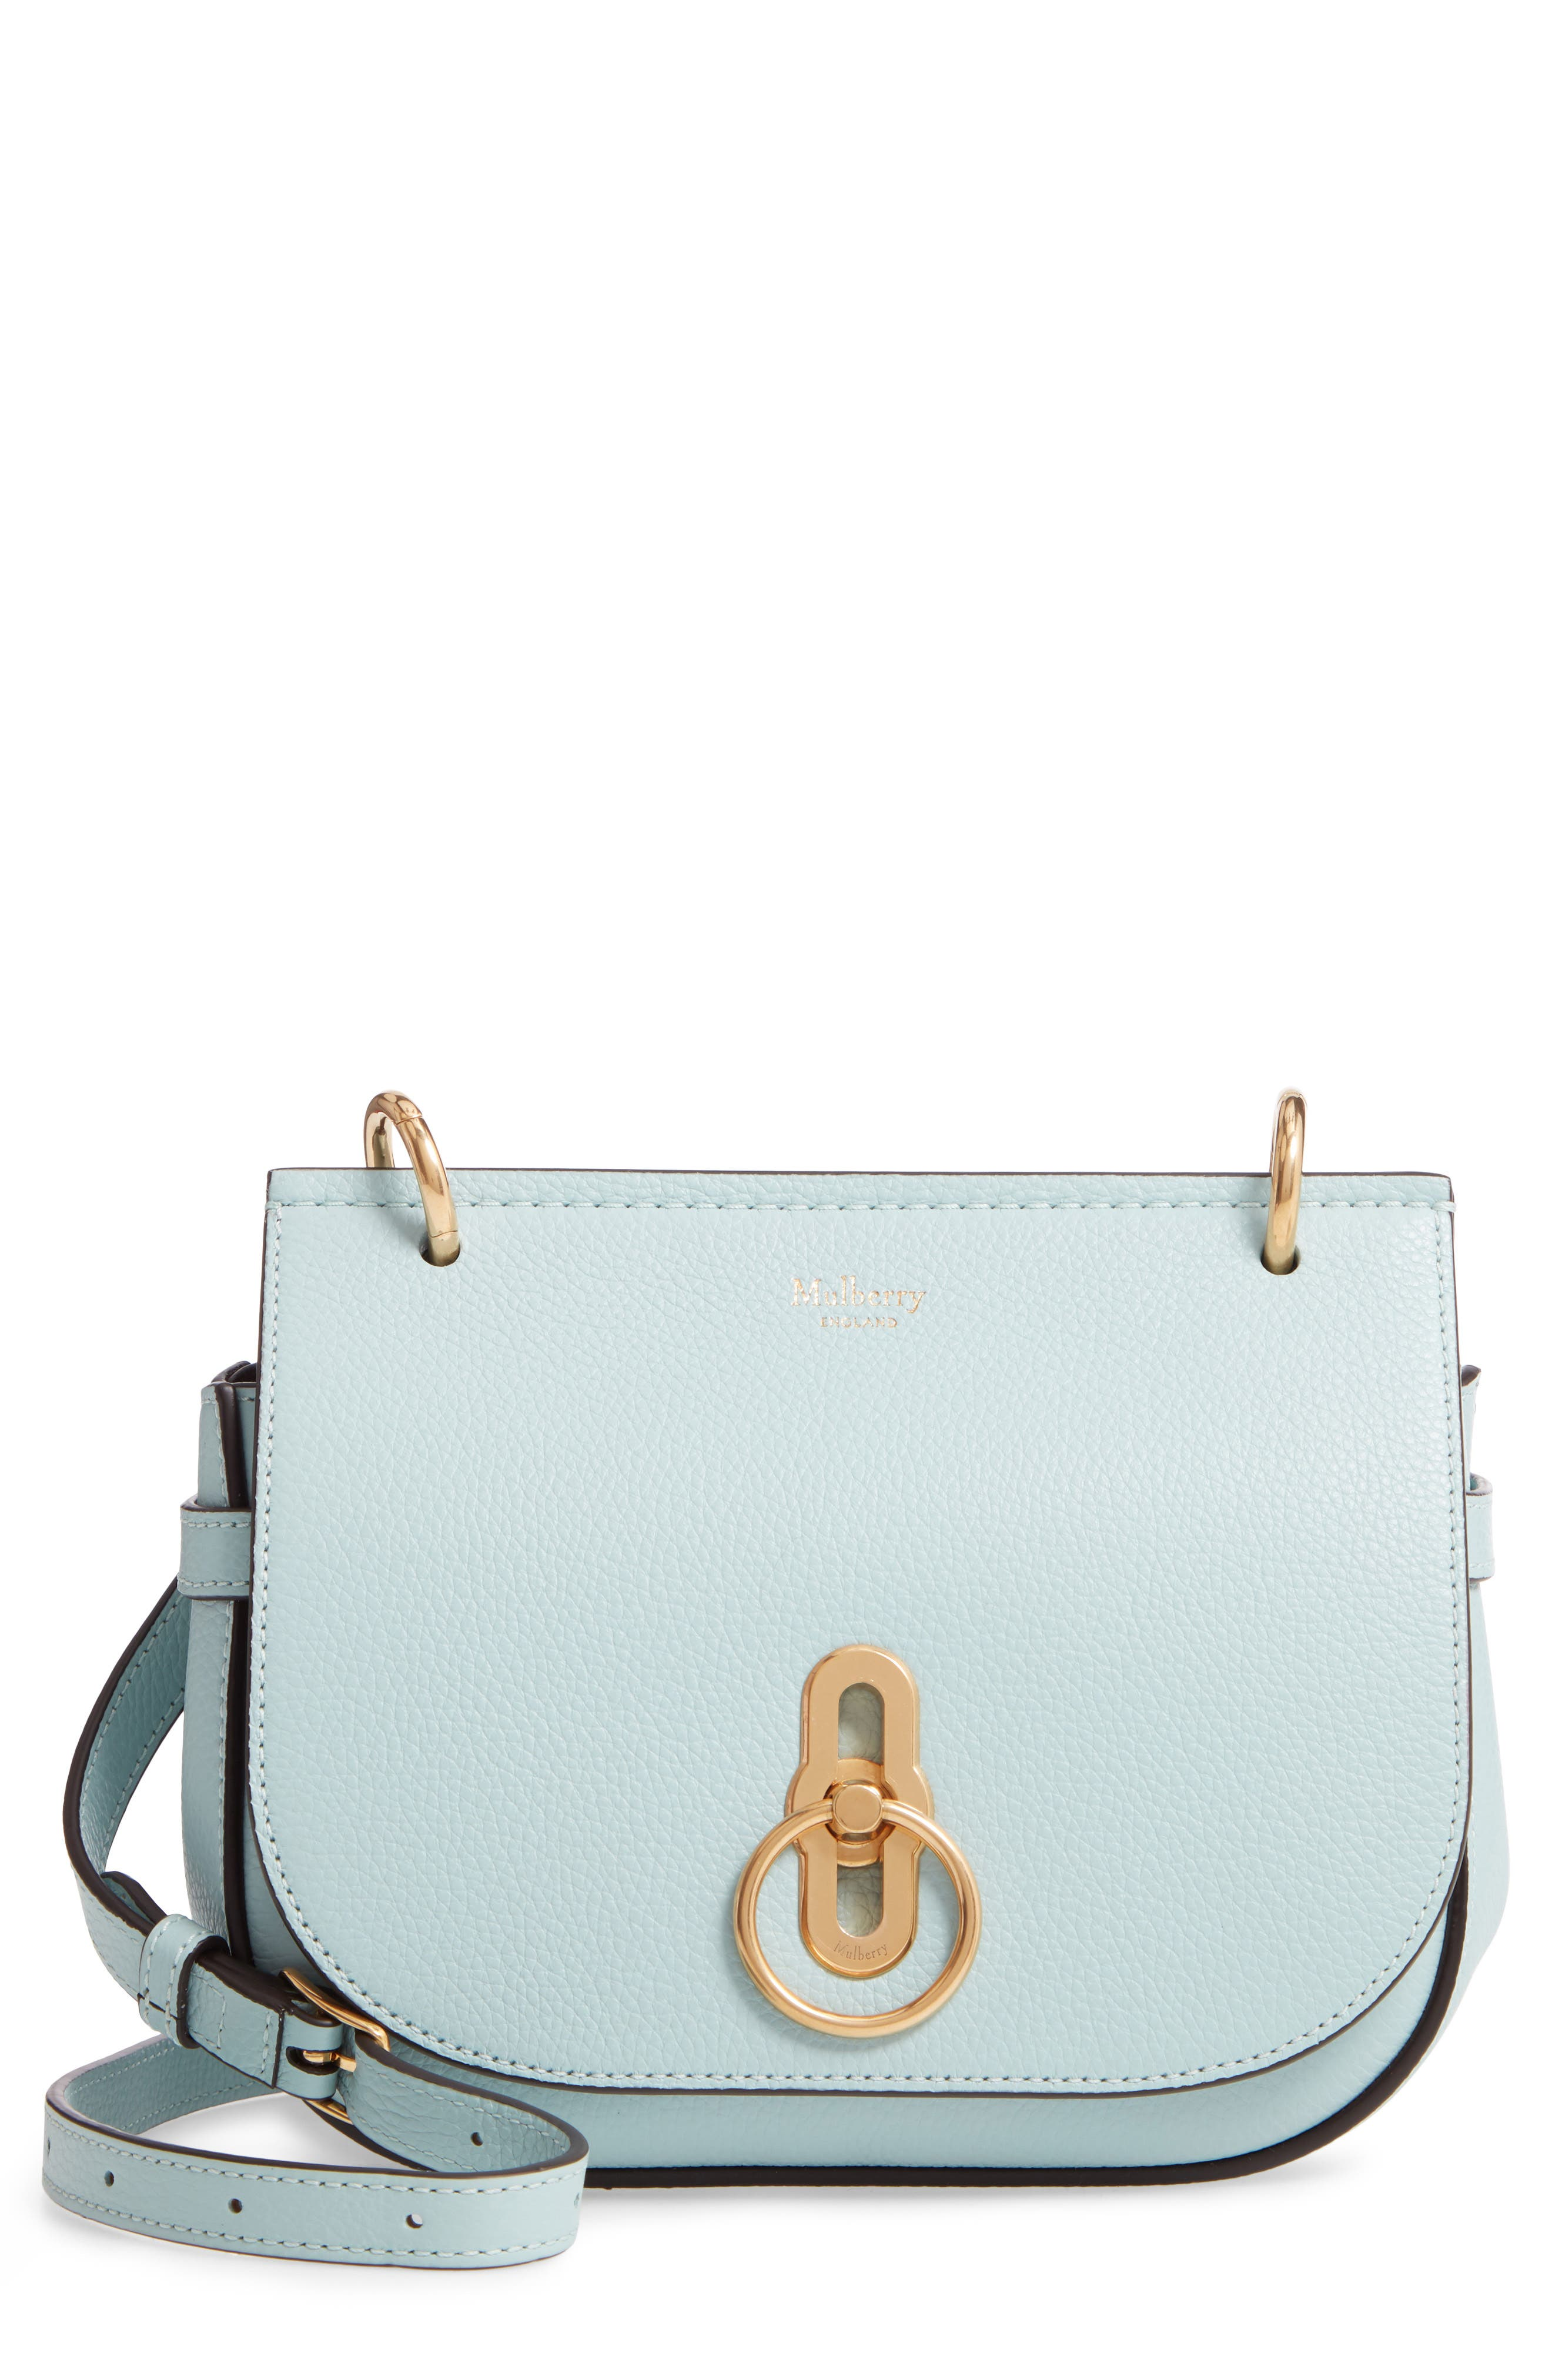 MULBERRY Small Amberley Leather Crossbody Bag in Light Antique Blue